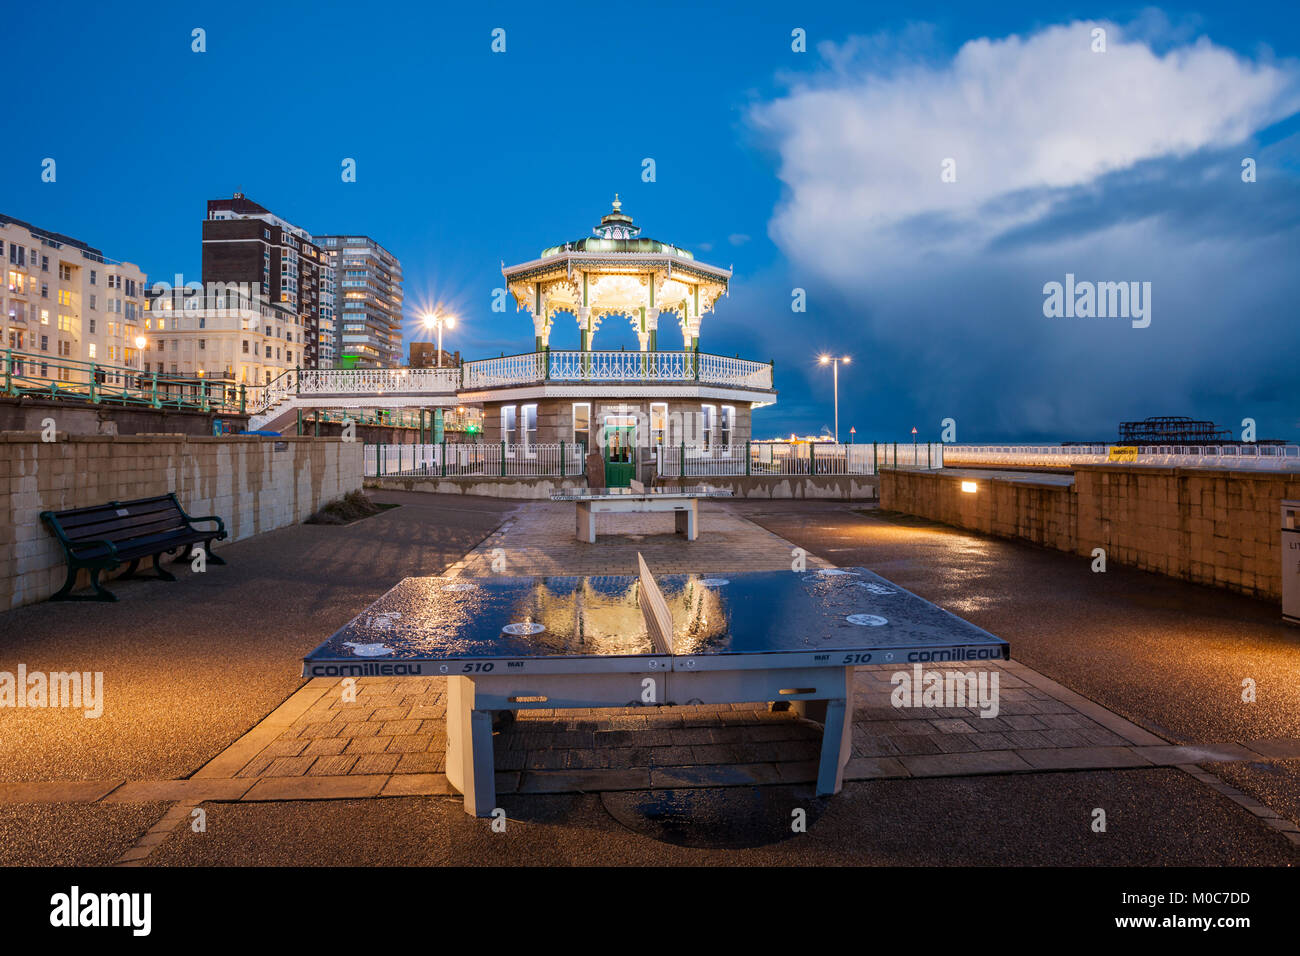 Evening at the Bandstand on Brighton seafront, East Sussex, England. Stock Photo